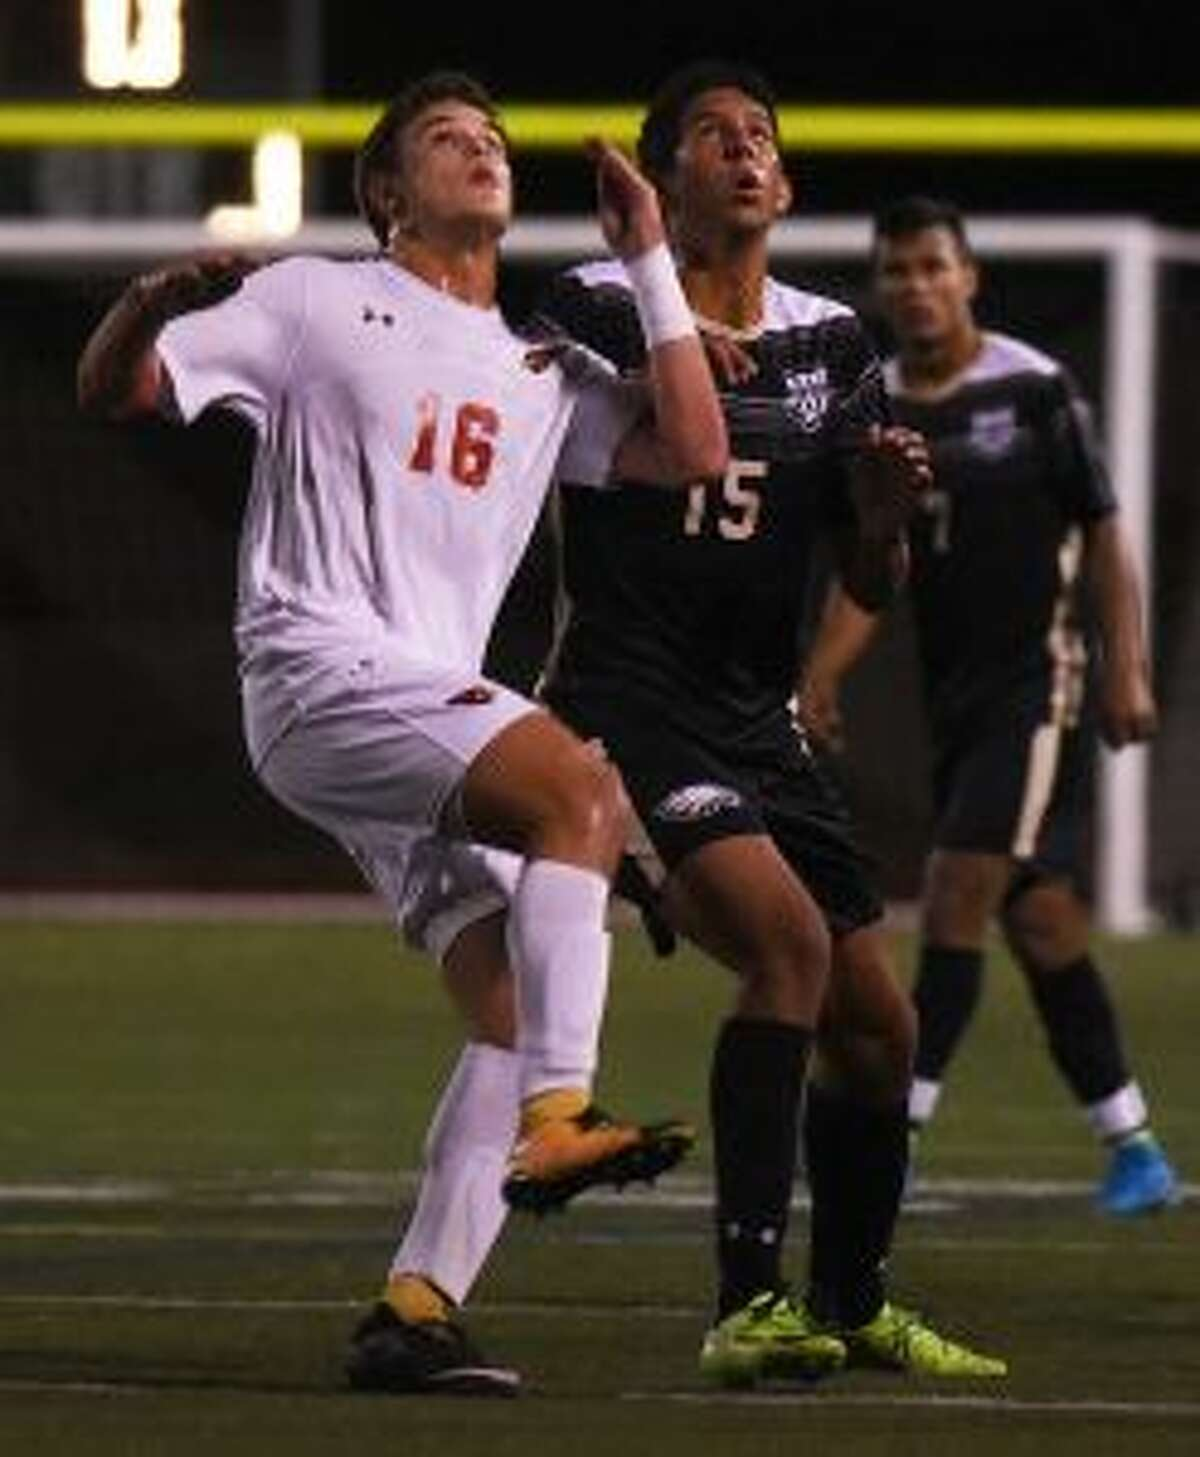 Greenwich's Francisco Ligouri and Trumbull'sMatheus Santiago look to make a play in the air. - Dave Stewart photo